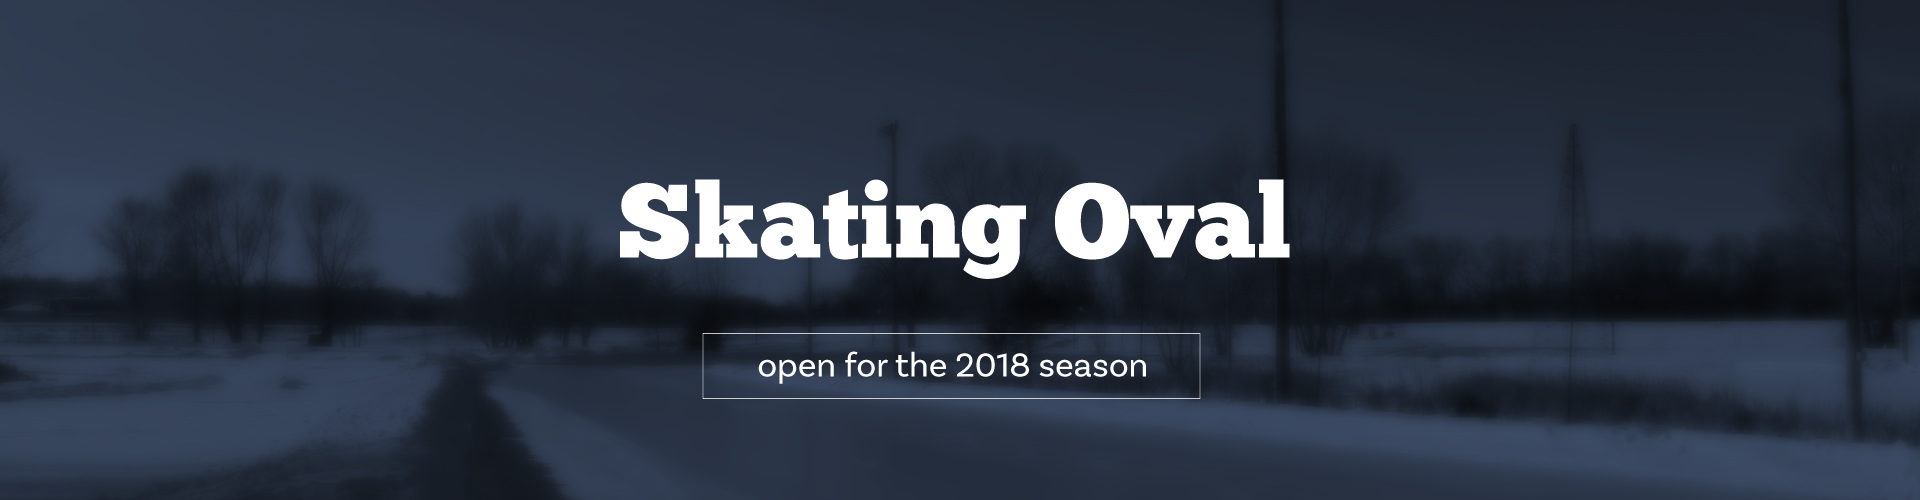 Skating Oval now open banner